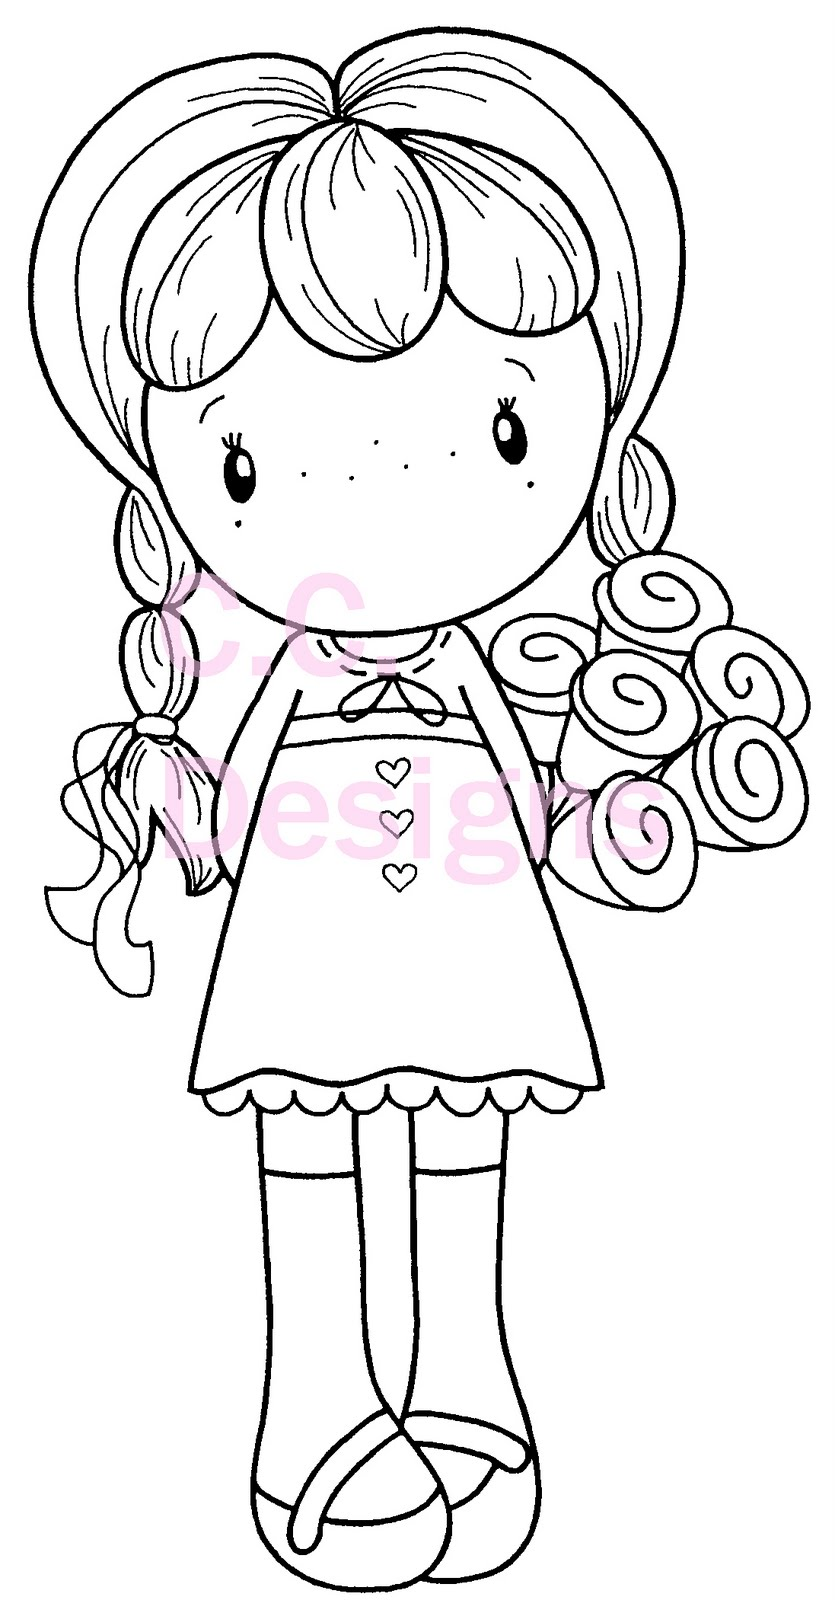 Copic Marker Coloring Pages Sketch Coloring Page